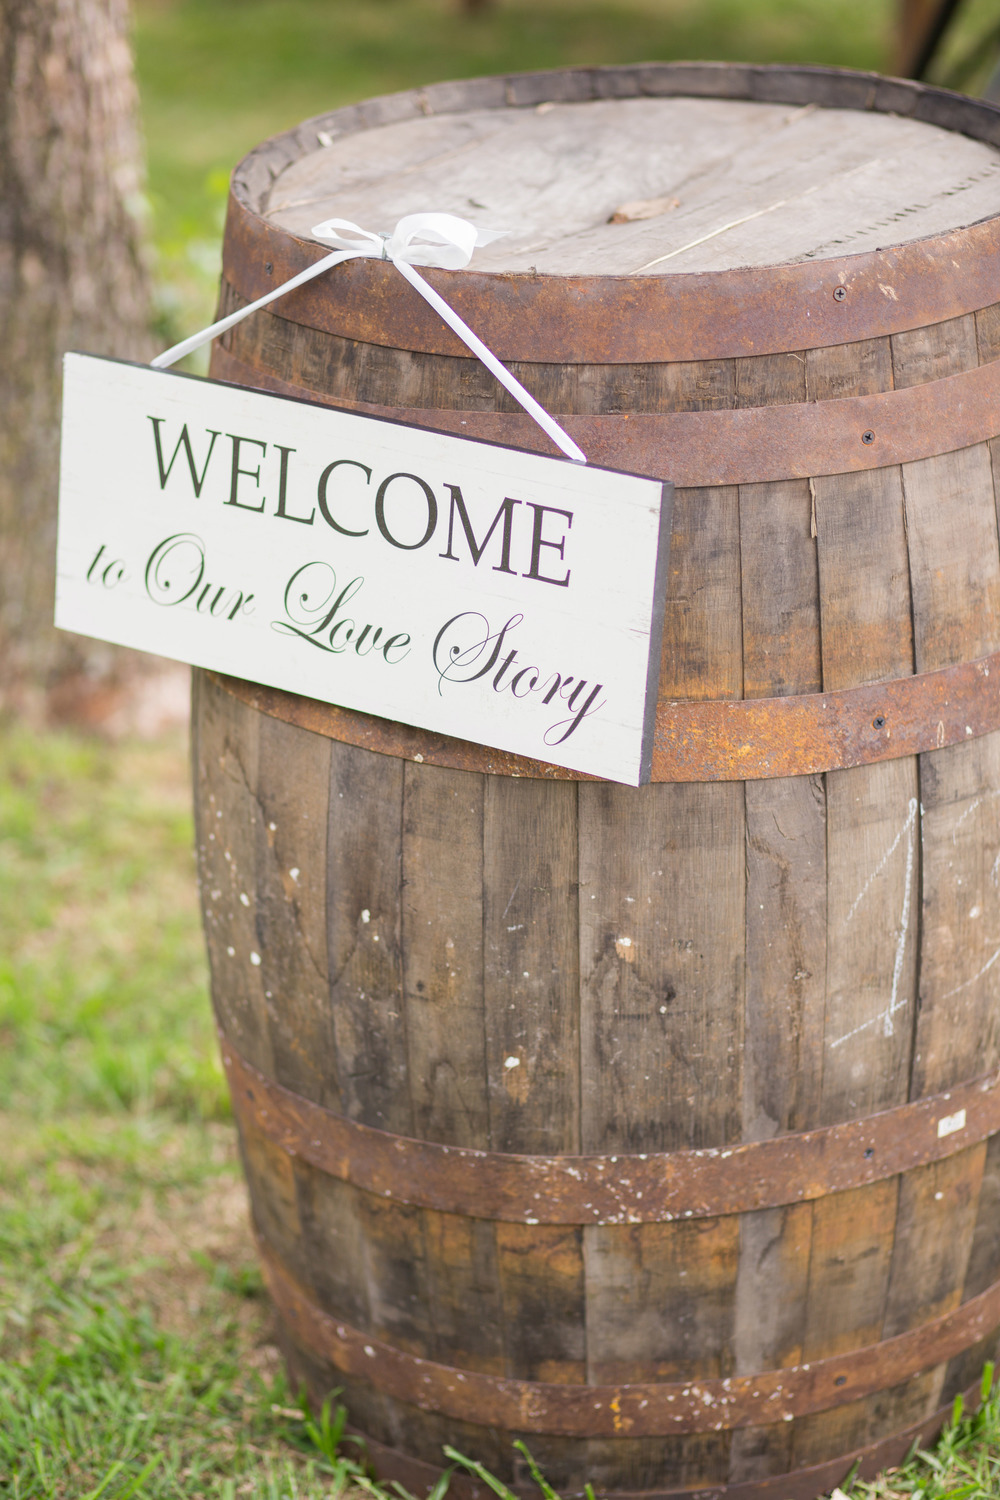 Welcome to our love story sign on barrel